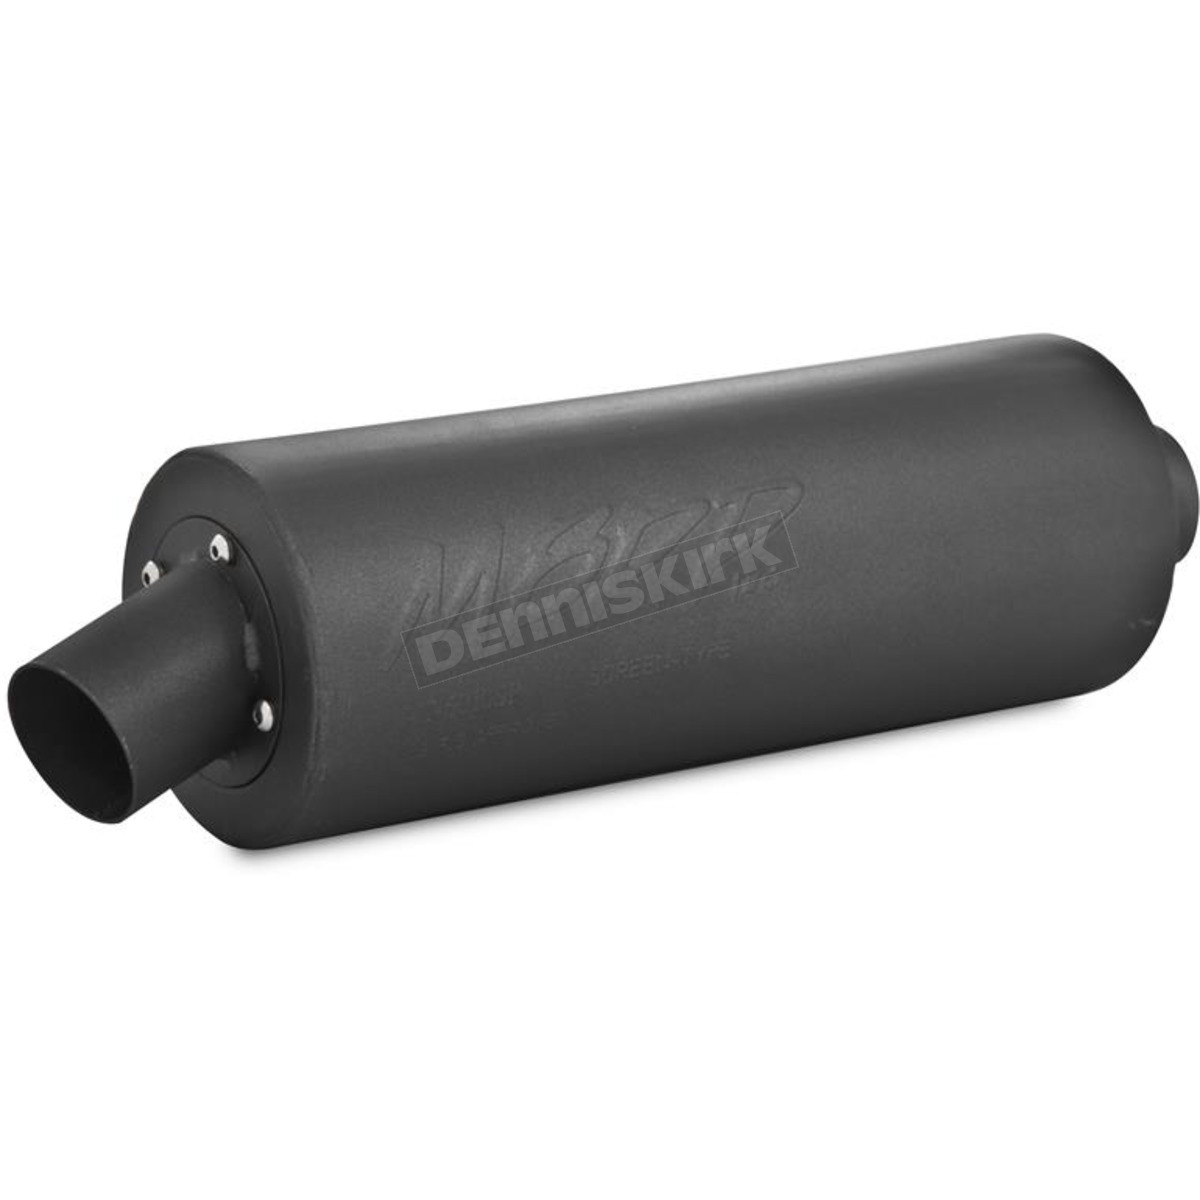 MBRP Exhaust AT-6010SP Sport Muffler Black Sport Muffler